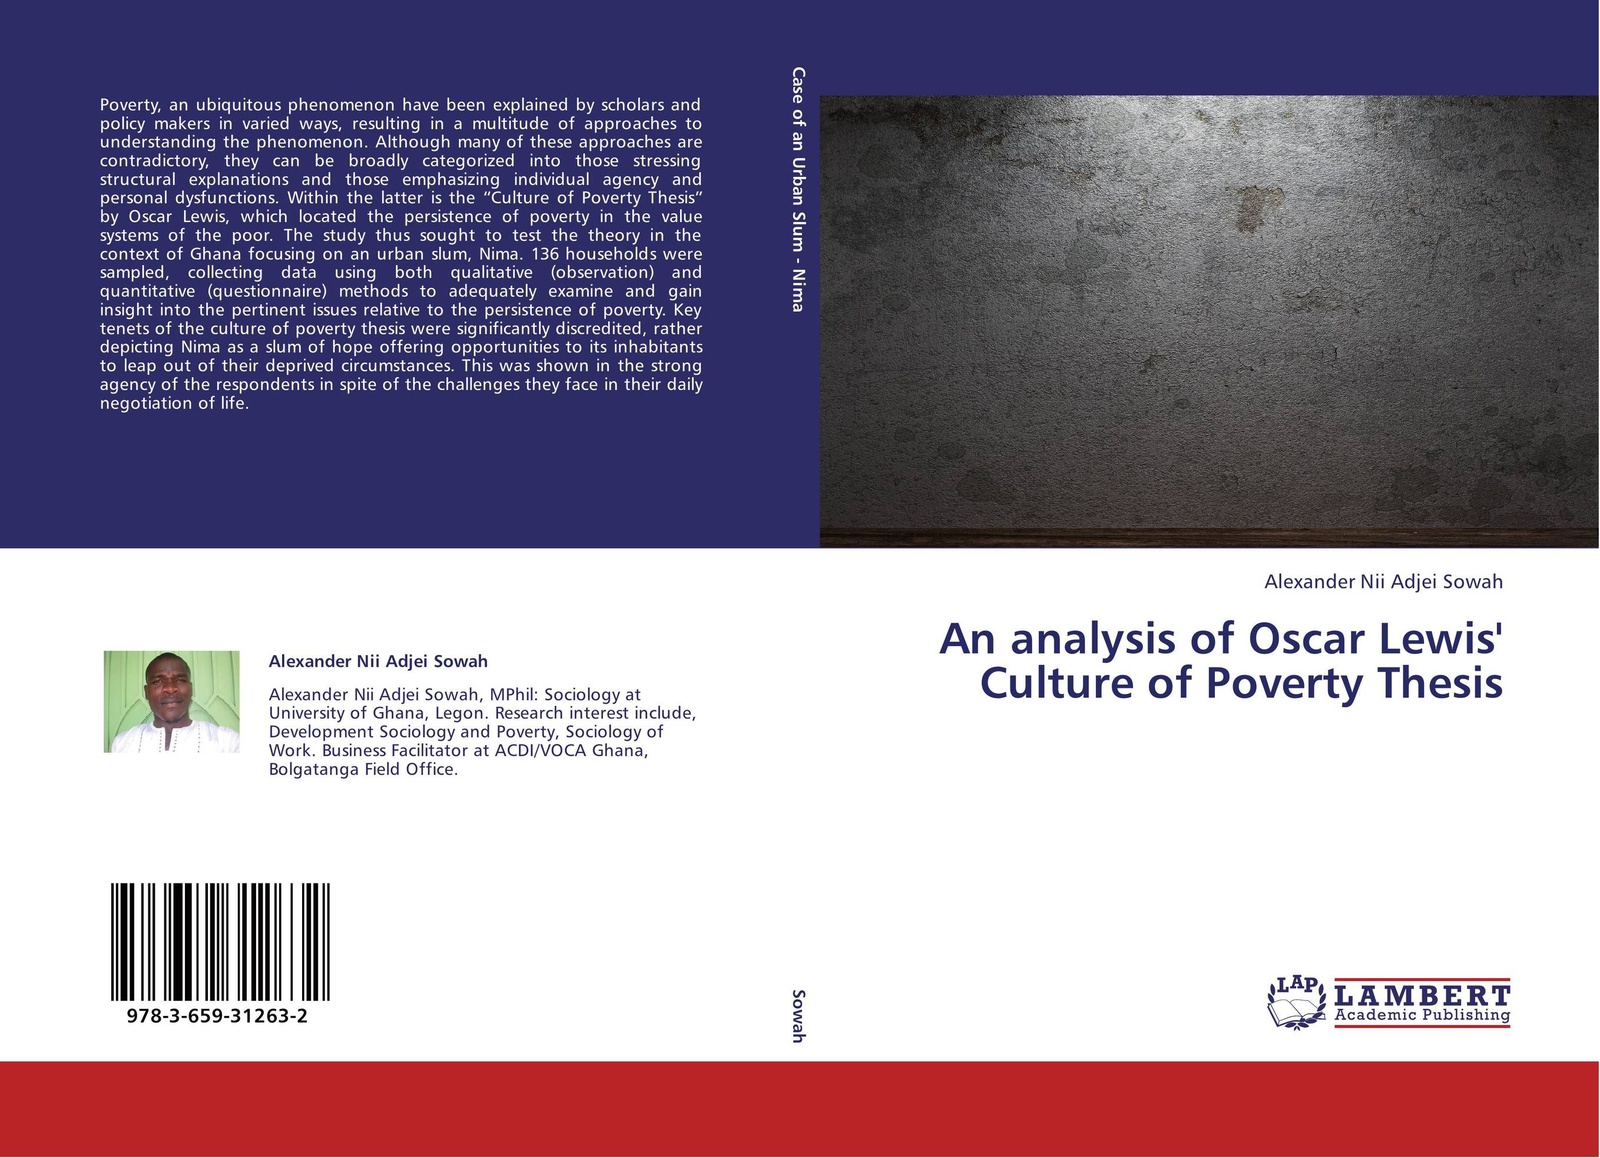 Alexander Nii Adjei Sowah An analysis of Oscar Lewis' Culture of Poverty Thesis persistence of poverty in rural ghana